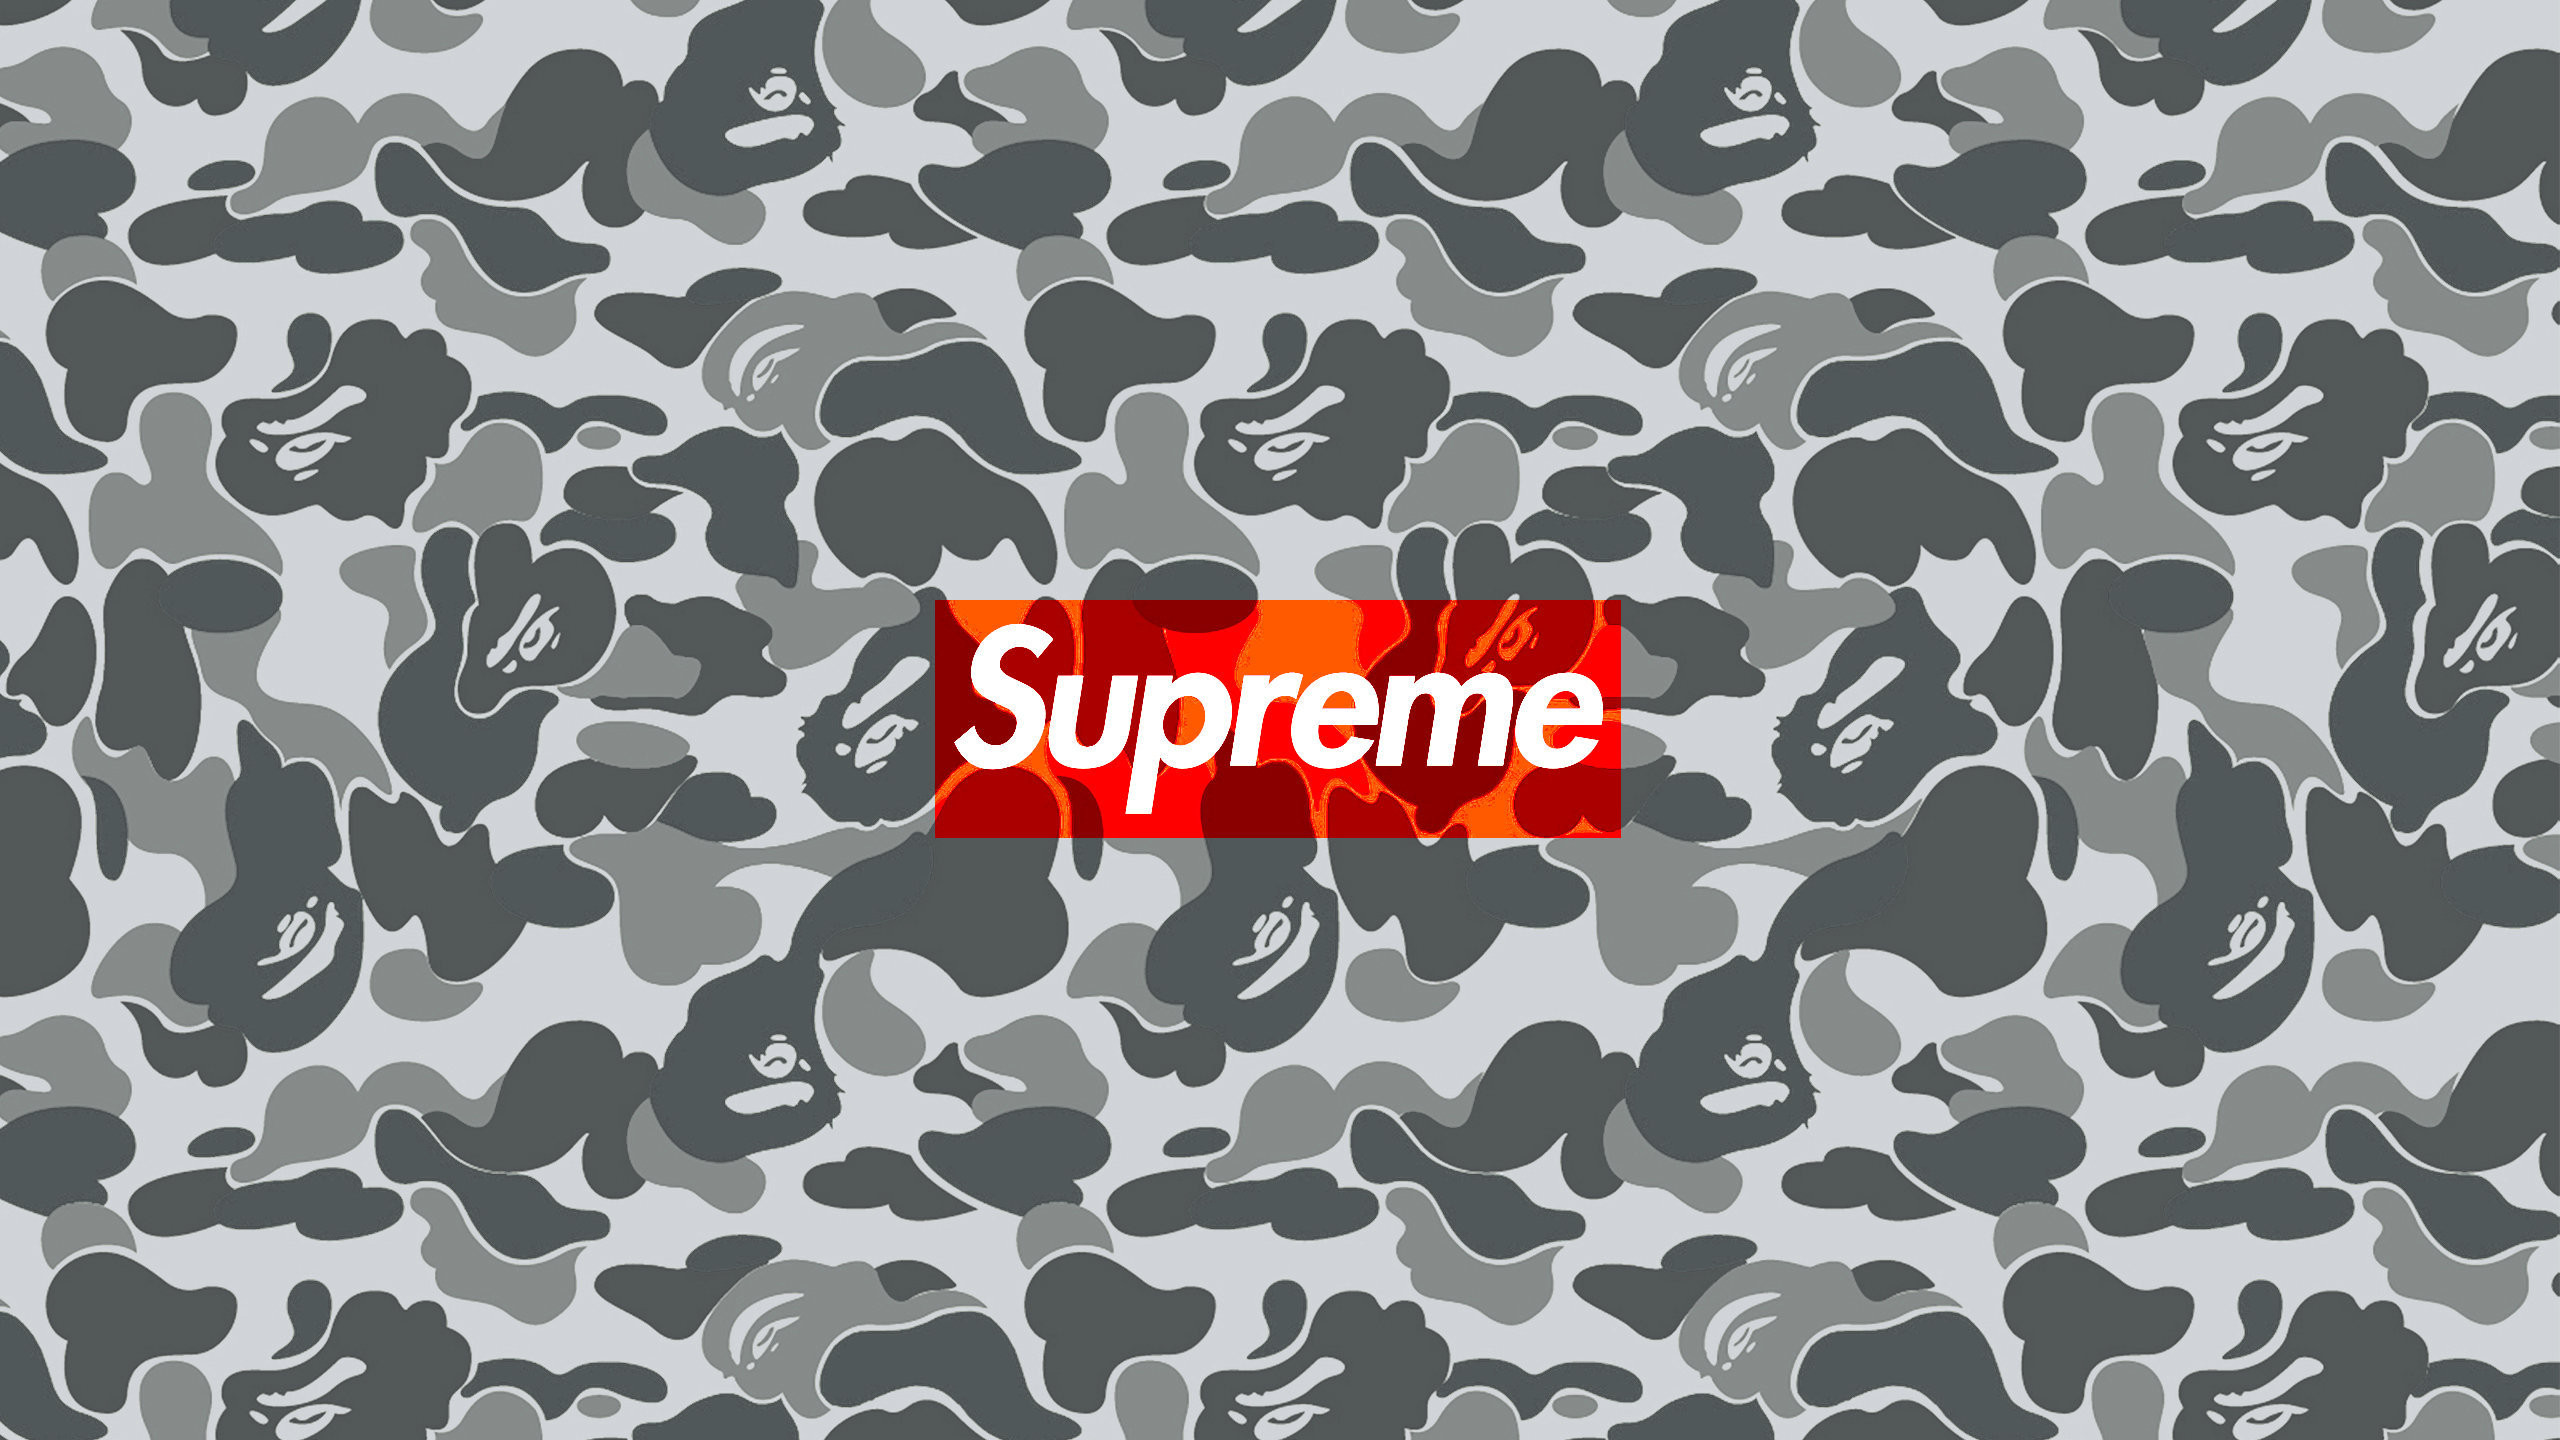 Res: 2560x1440, Download the Supreme Bape Camo wallpaper below for your mobile device  (Android phones, iPhone etc.)